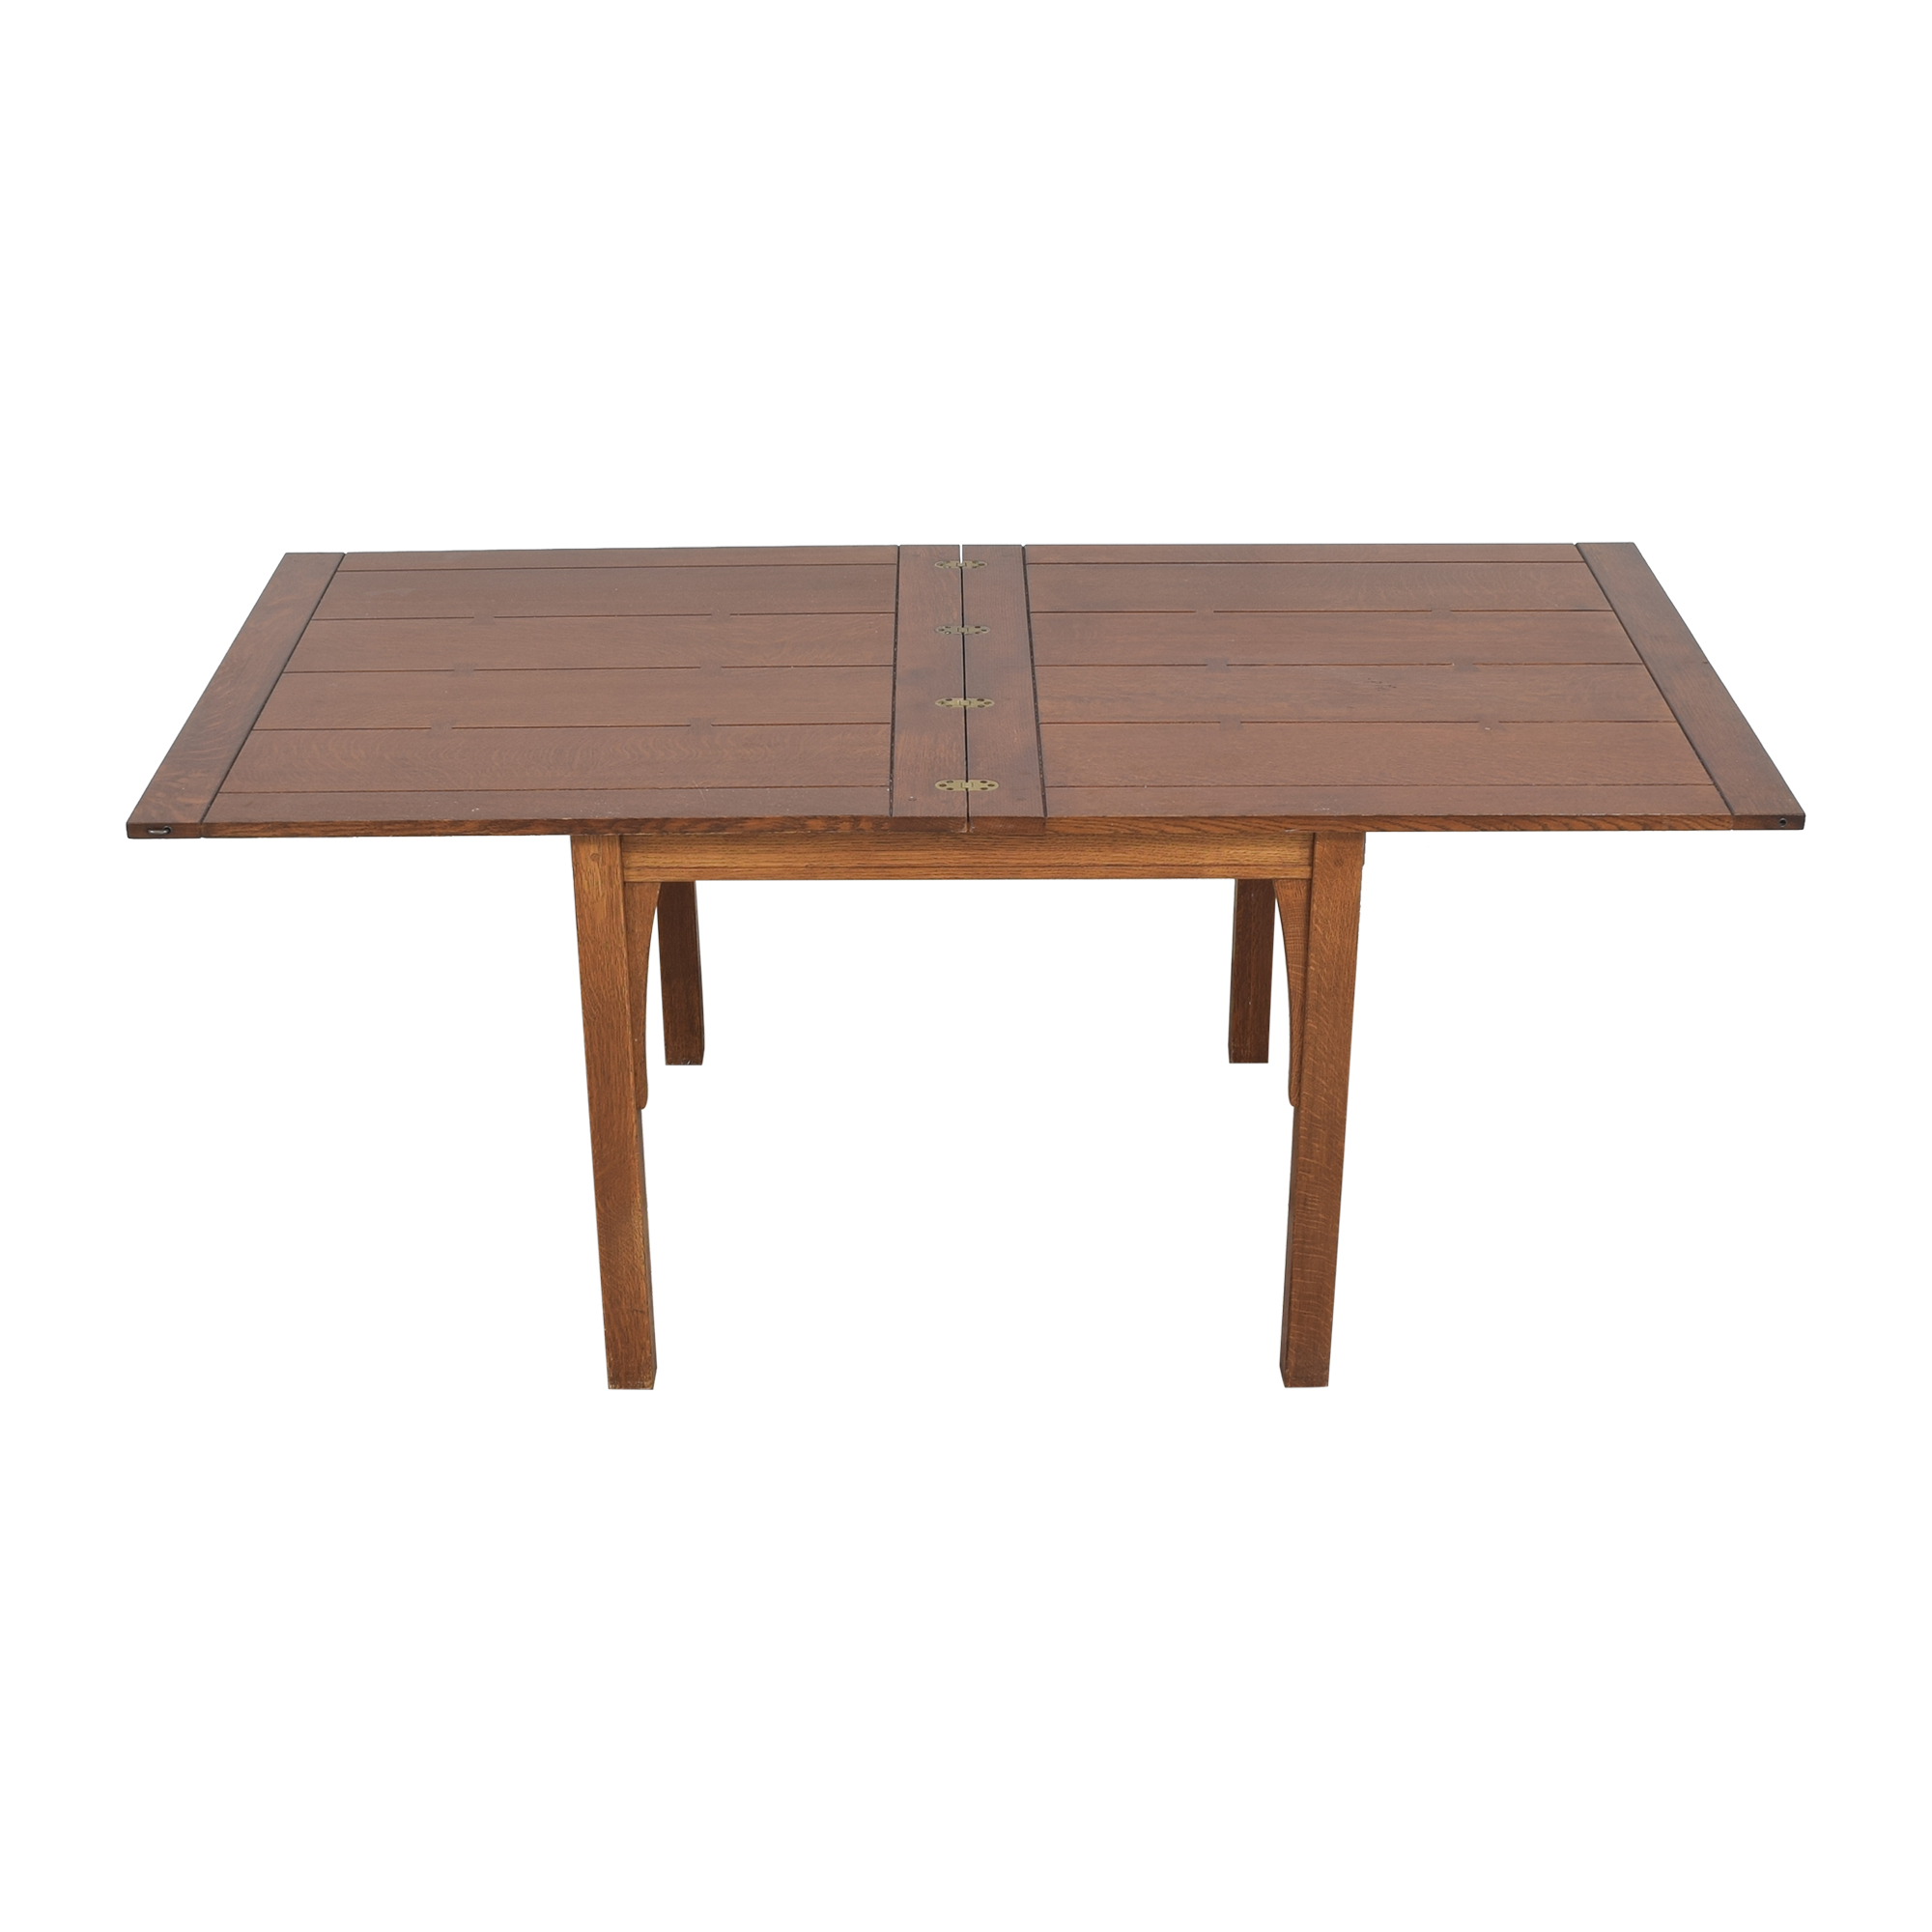 Stickley Furniture Stickley Furniture Mission Flip Top Extendable Table nyc